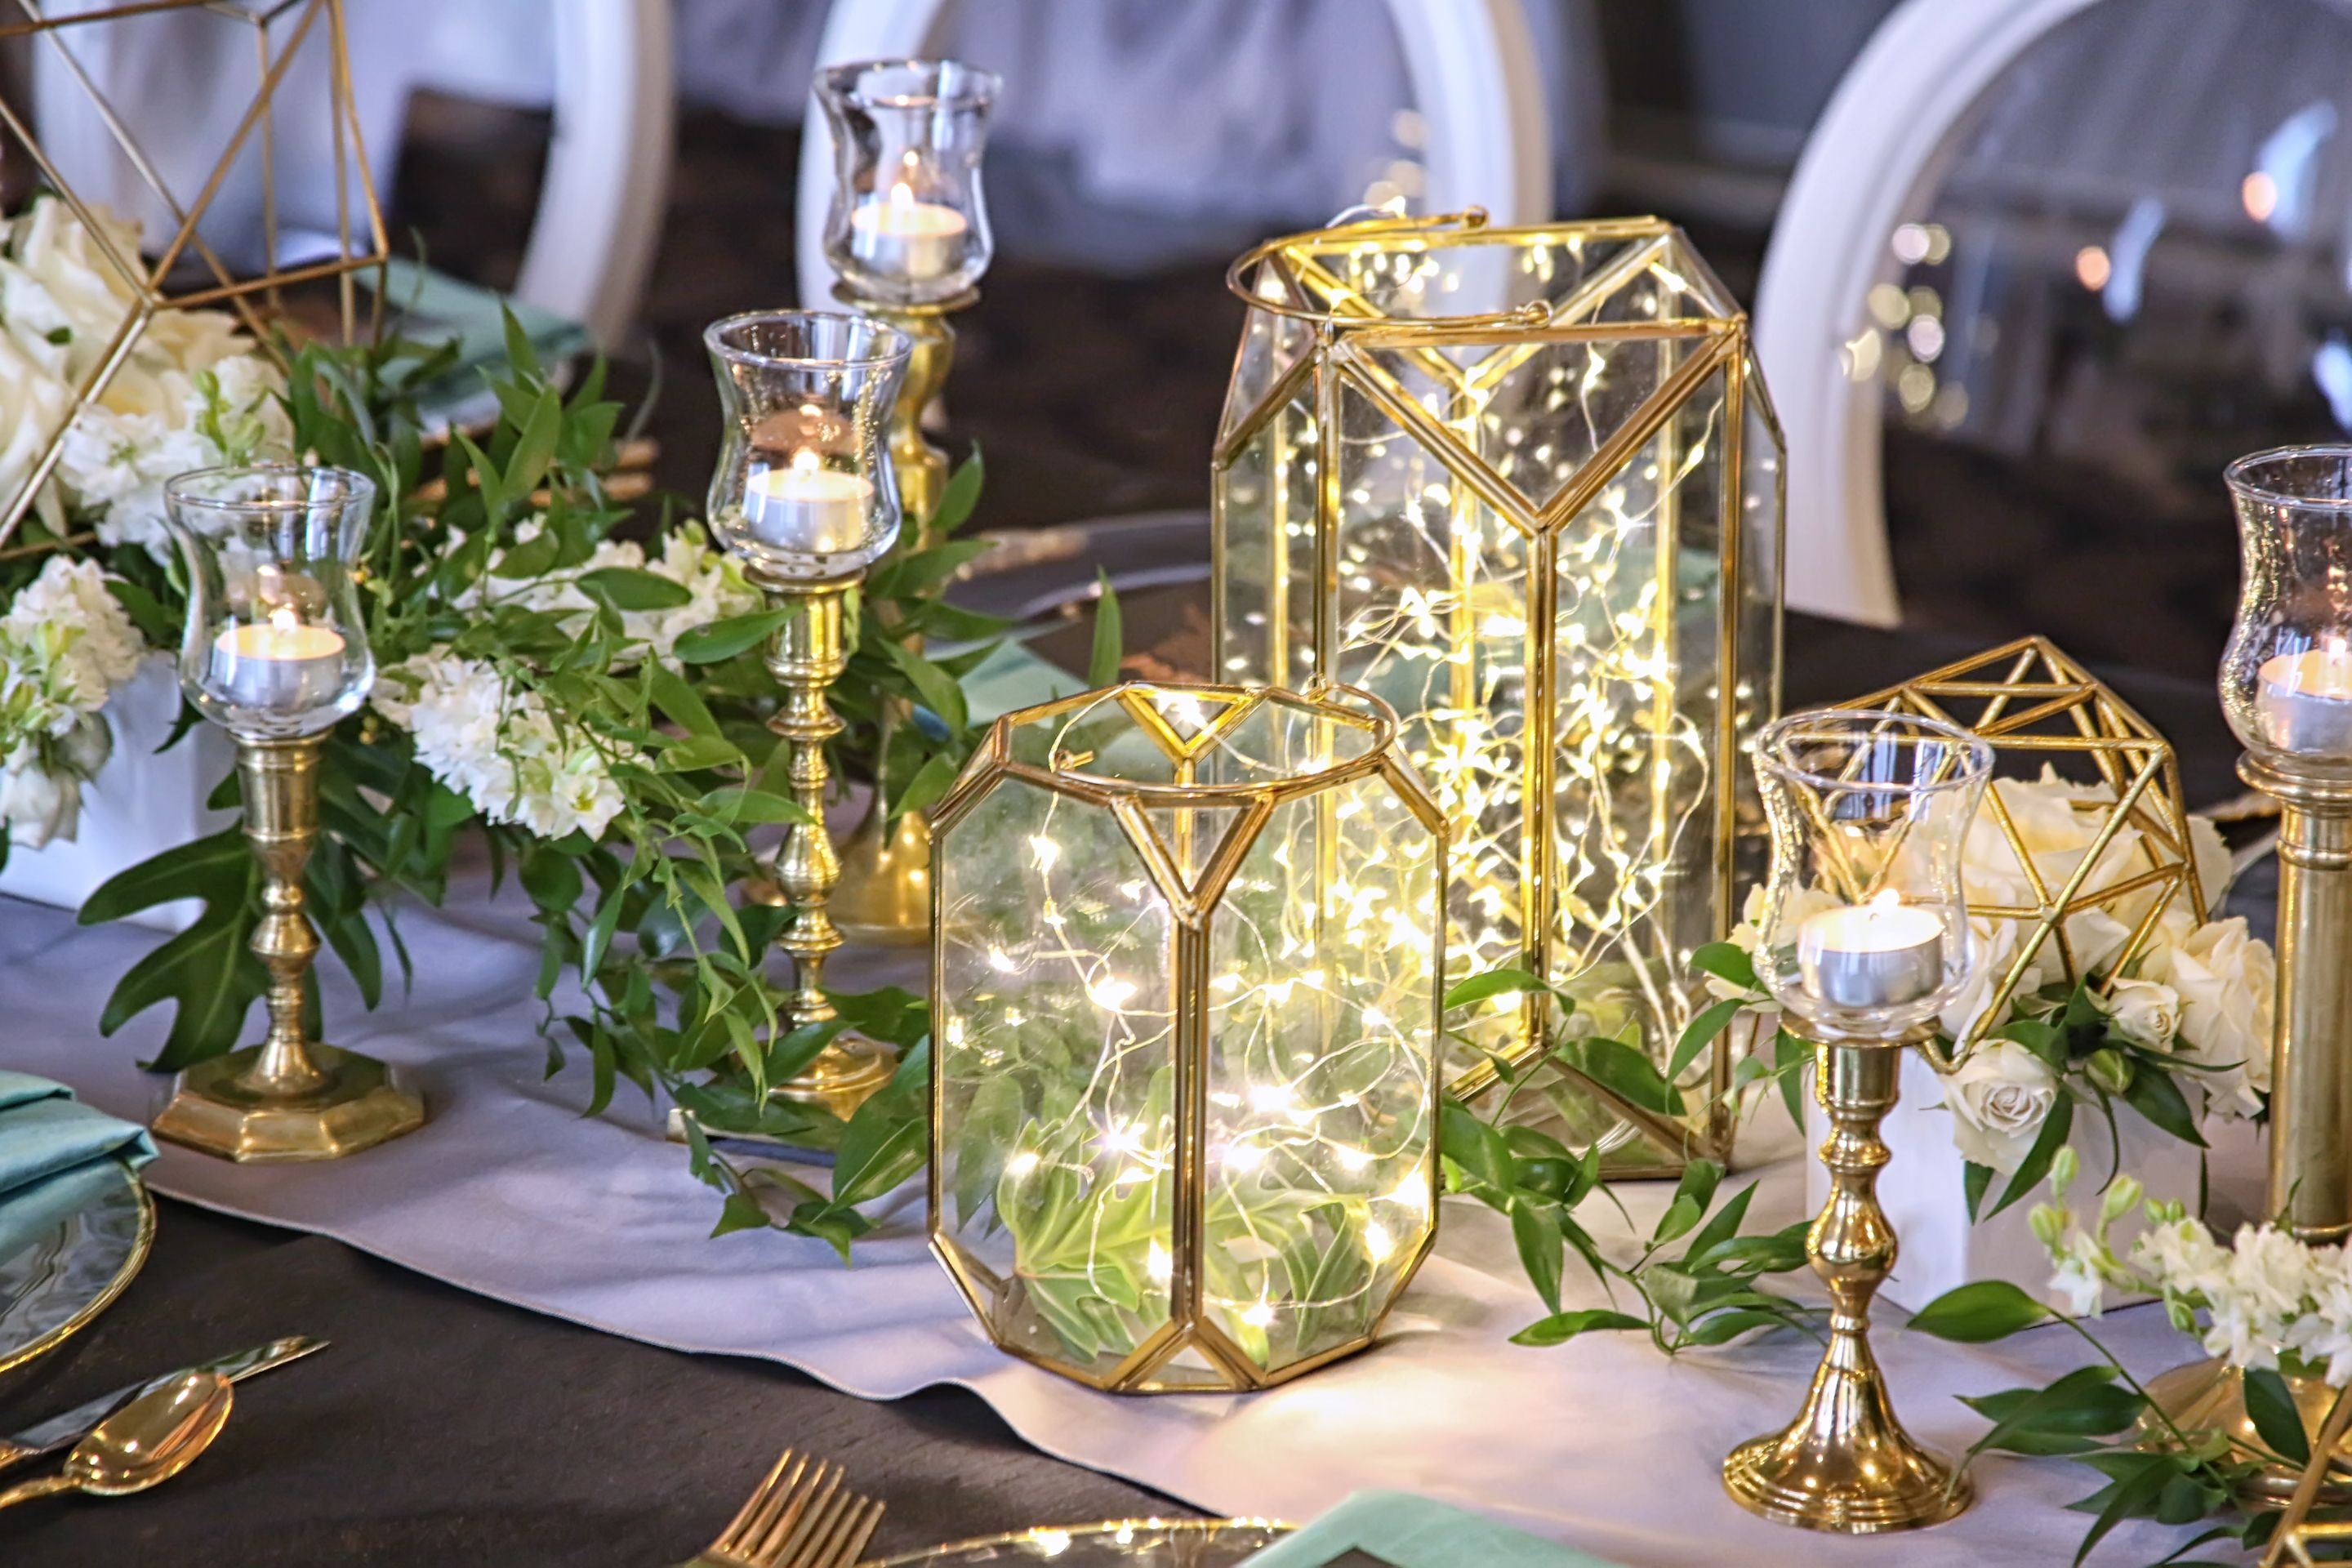 table centerpiece design and floral by Lana with FairbanksFlorist.net, photo ArtFaulkner.com I used Geometric Figurines as armatures for the floral designs and geometric glass lanterns.